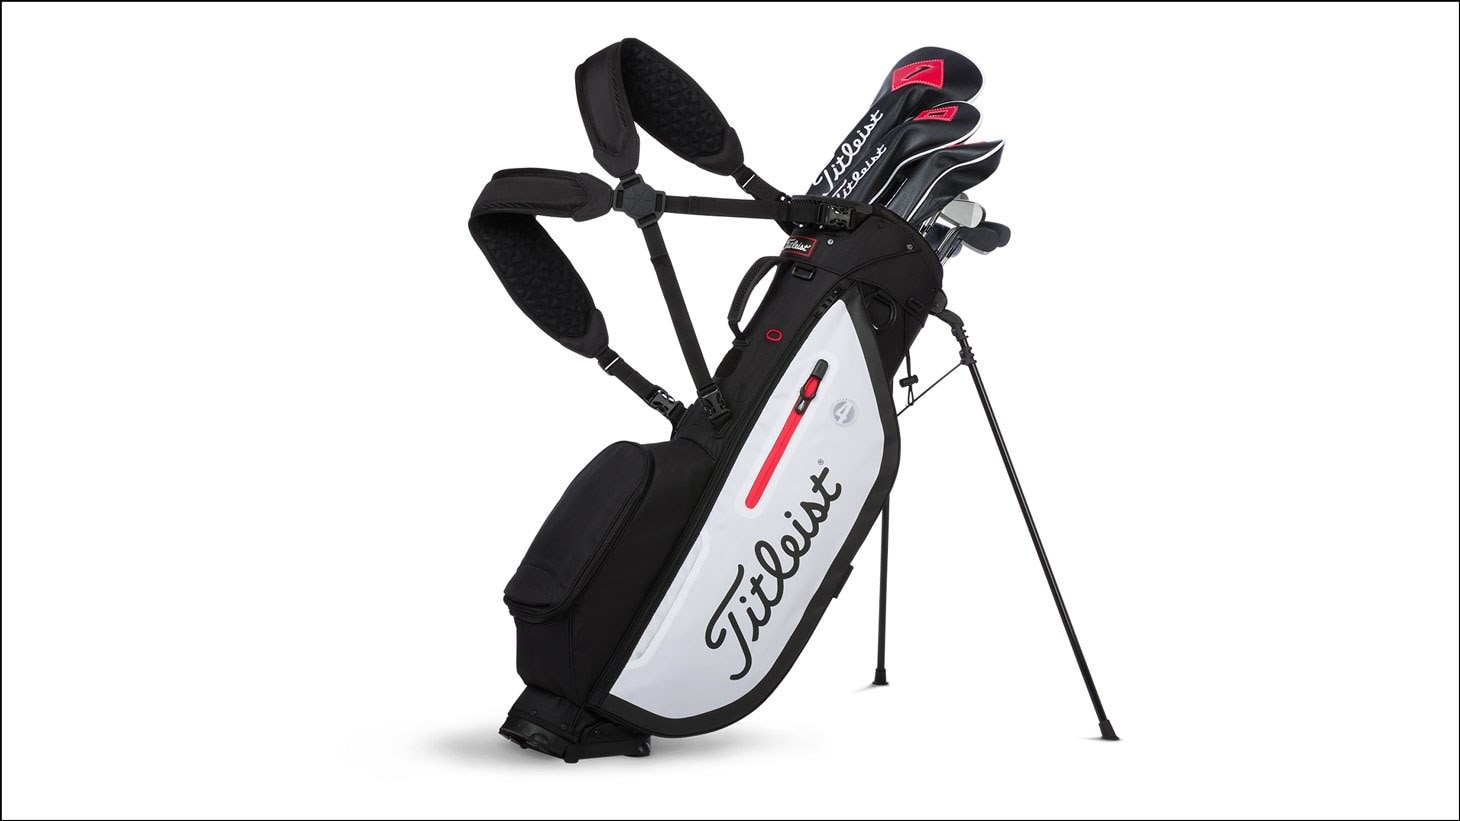 2019 Players 4 Stand Bag